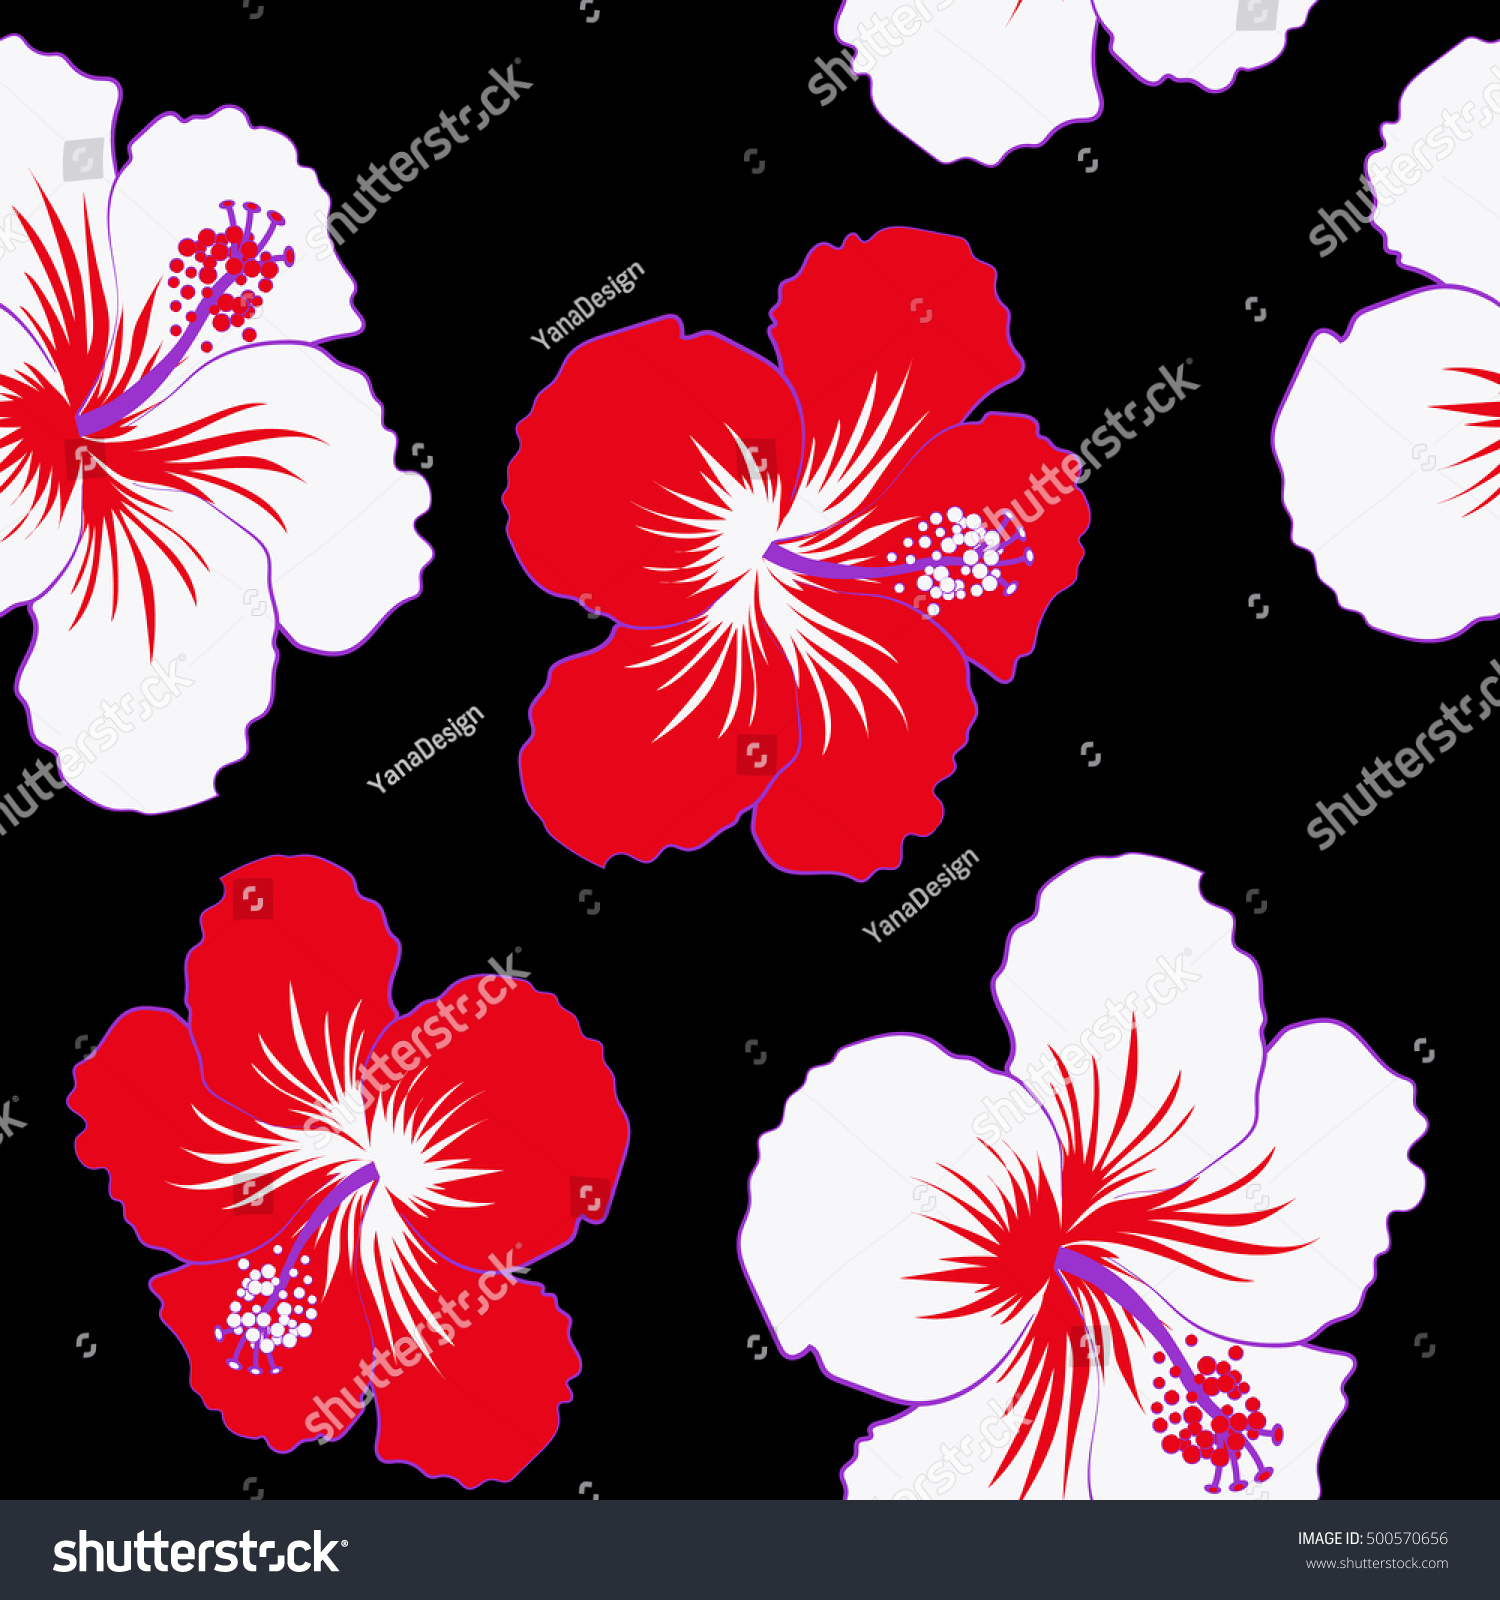 Red white hibiscus flower on black stock vector royalty free red and white hibiscus flower on a black background in a trendy vector style hawaiian izmirmasajfo